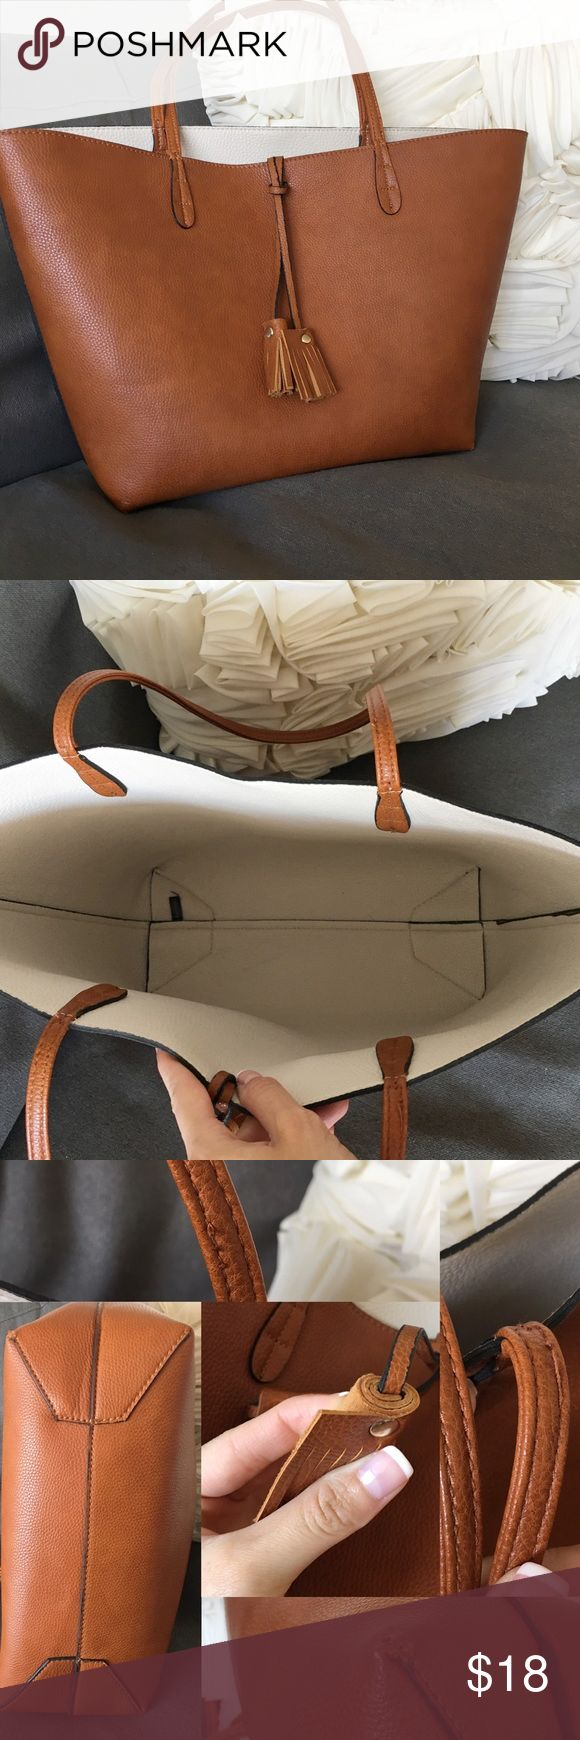 """Stitch Fix Parvin Reversible Tote w Tassels Super cute tote with tassels on the outside.  It fits more than you think--books, laptops up to 15"""", makeup bag, water bottle, umbrella... great for college/university & perfect for the girl boss on the go!  Dimensions: 11"""" height x 11"""" wide (base) x 18.5"""" wide (top) x 5"""" depth x 10"""" strap drop 